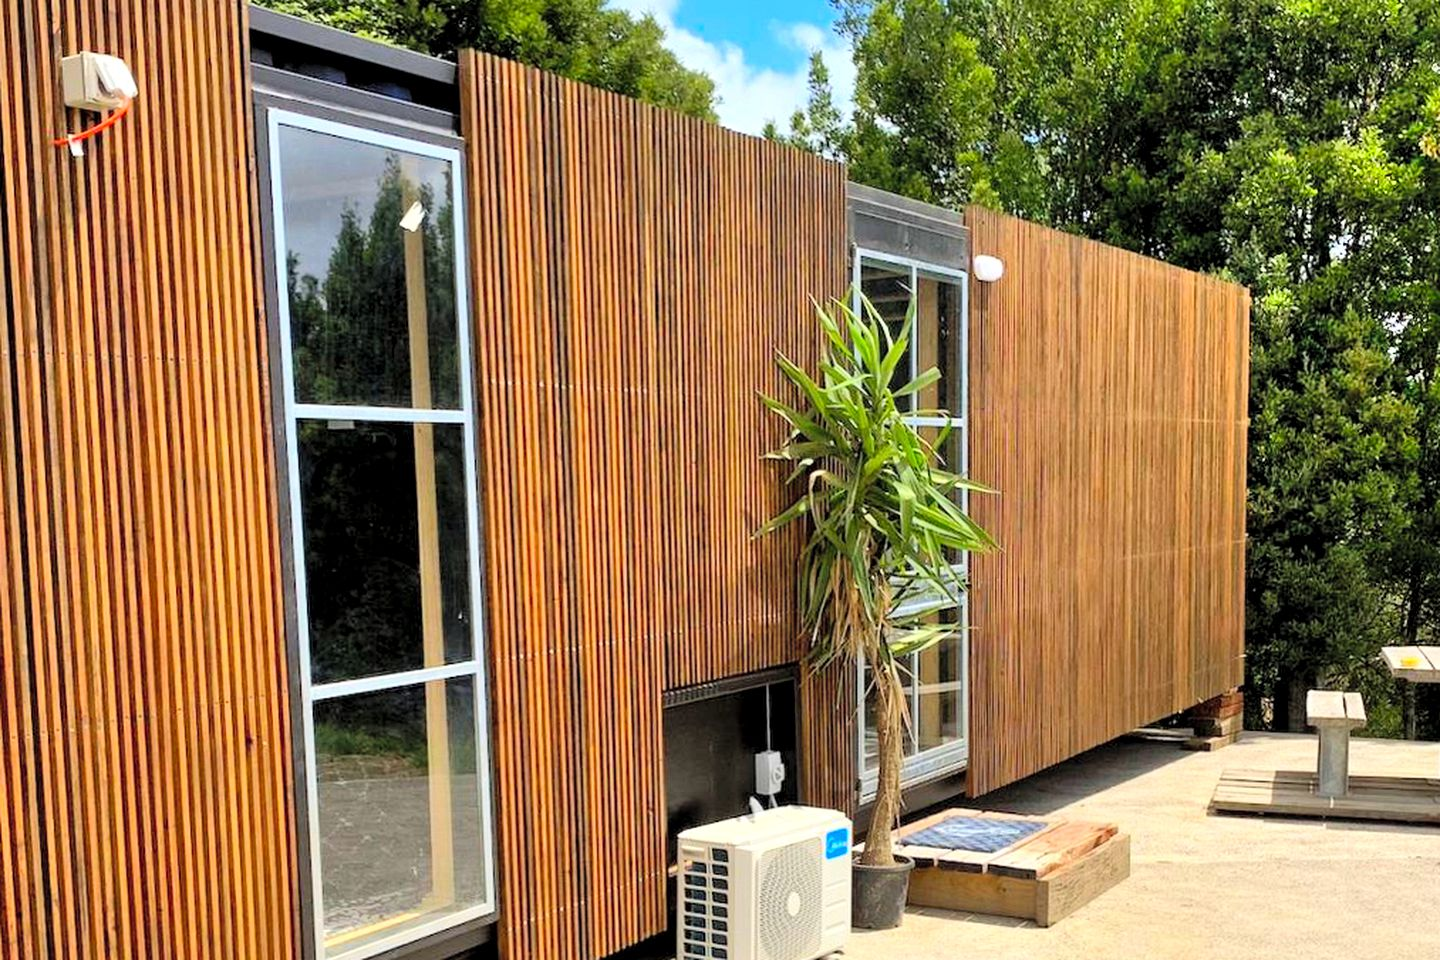 This tiny house in Victoria is great for getaways near Melbourne